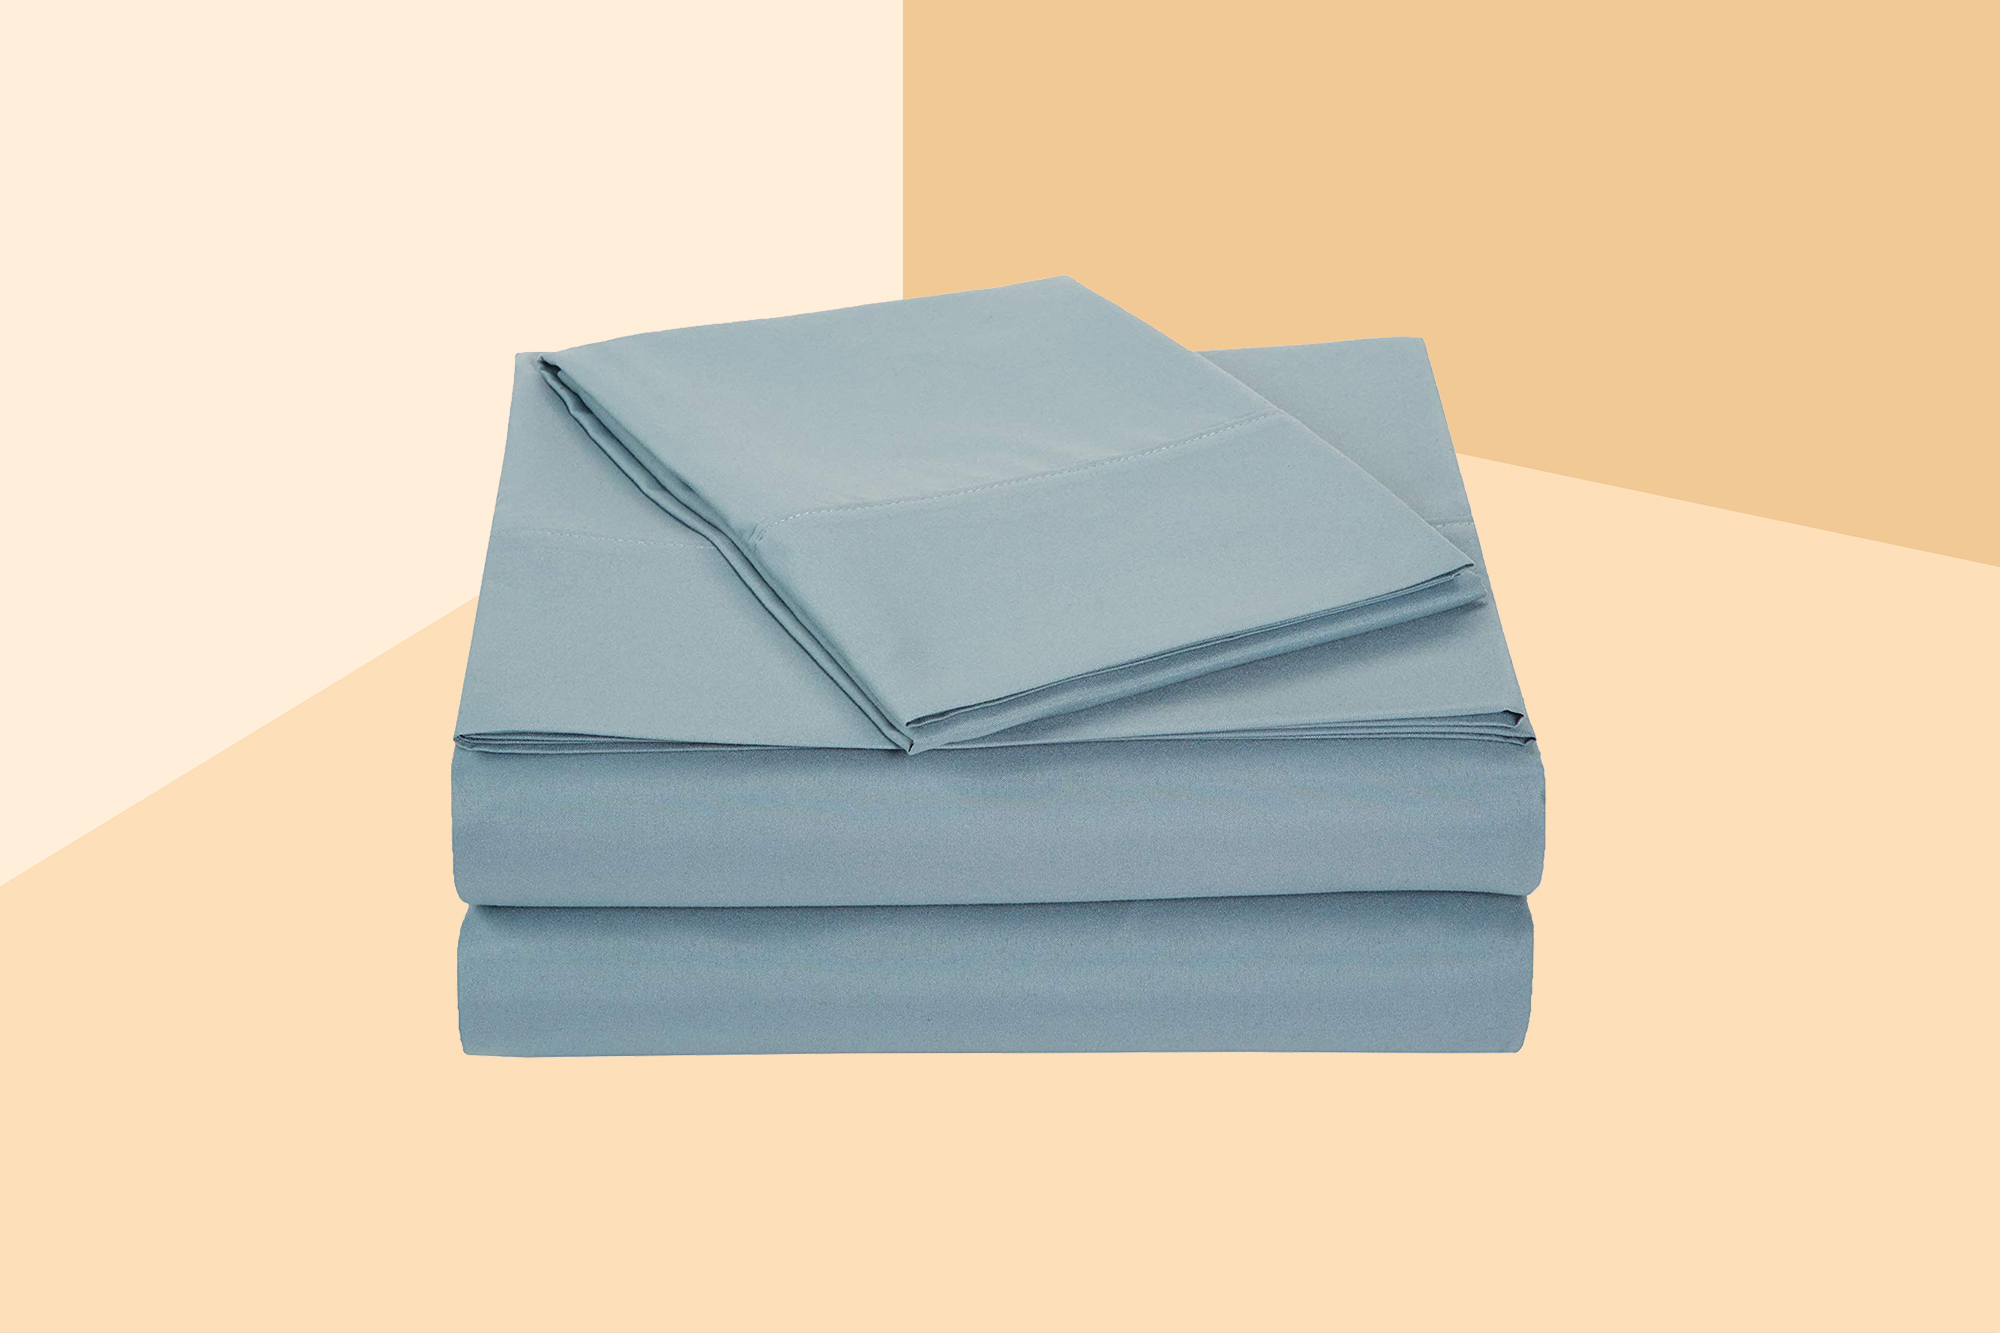 AmazonBasics Microfiber Spa Blue Sheet Set